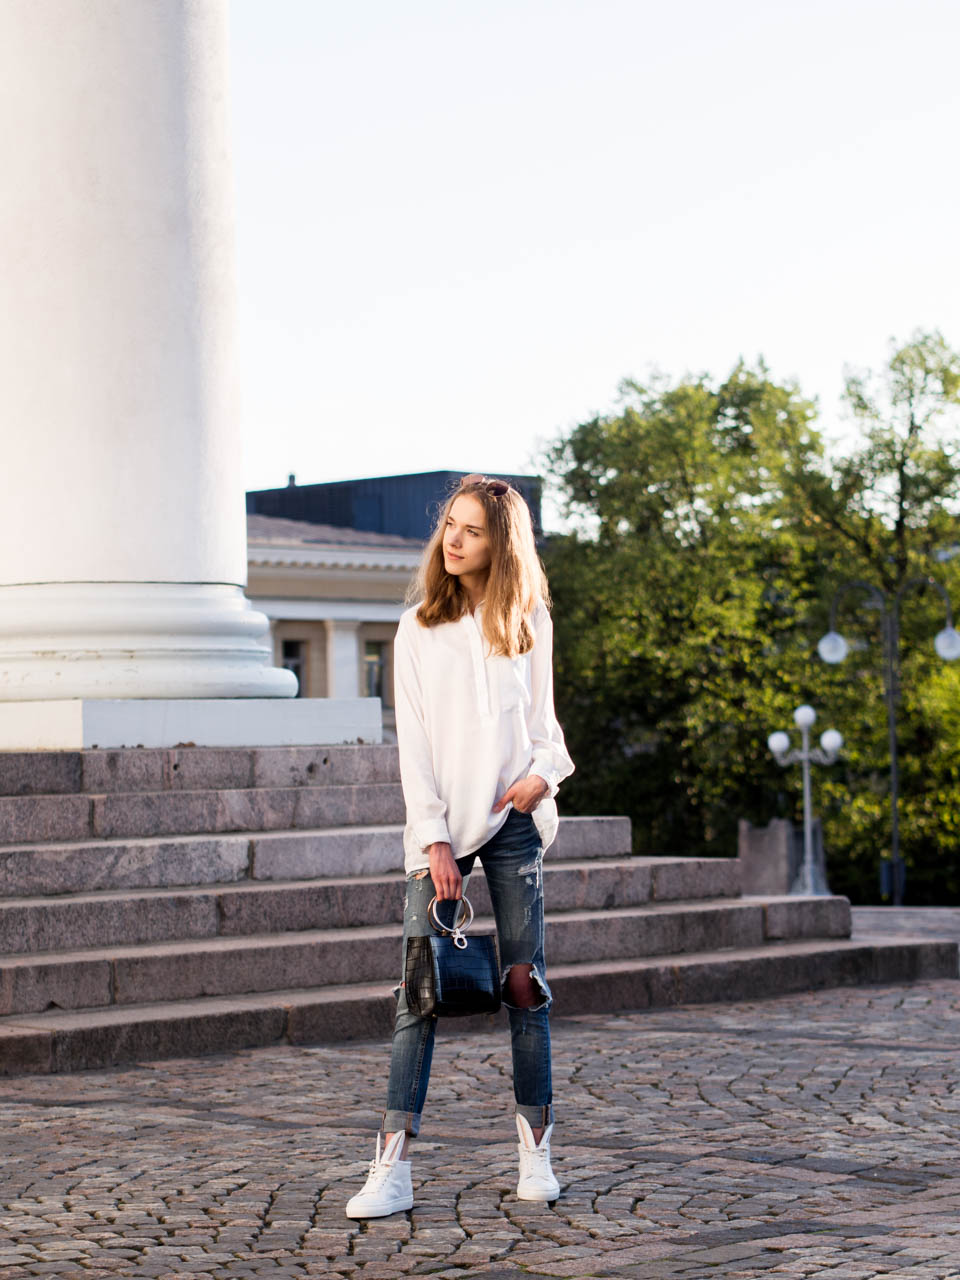 fashion-blogger-outfit-inspiration-classic-white-shirt-and-denim